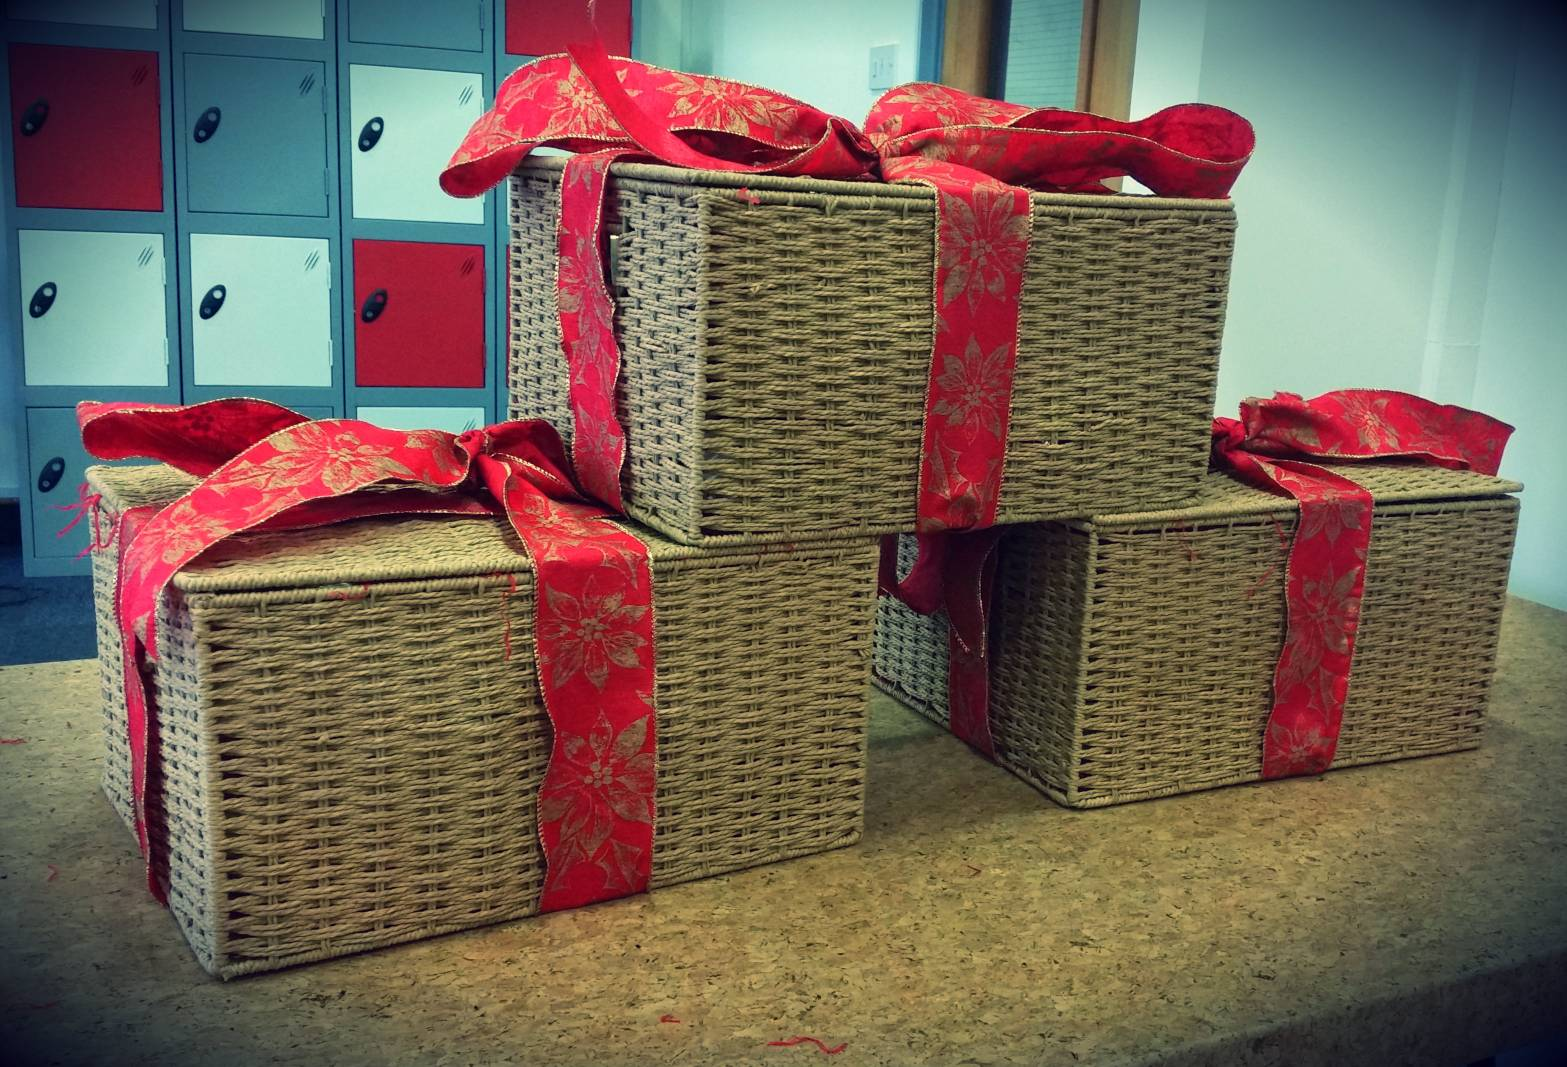 The hampers we made for Holbeck Elderly Aid